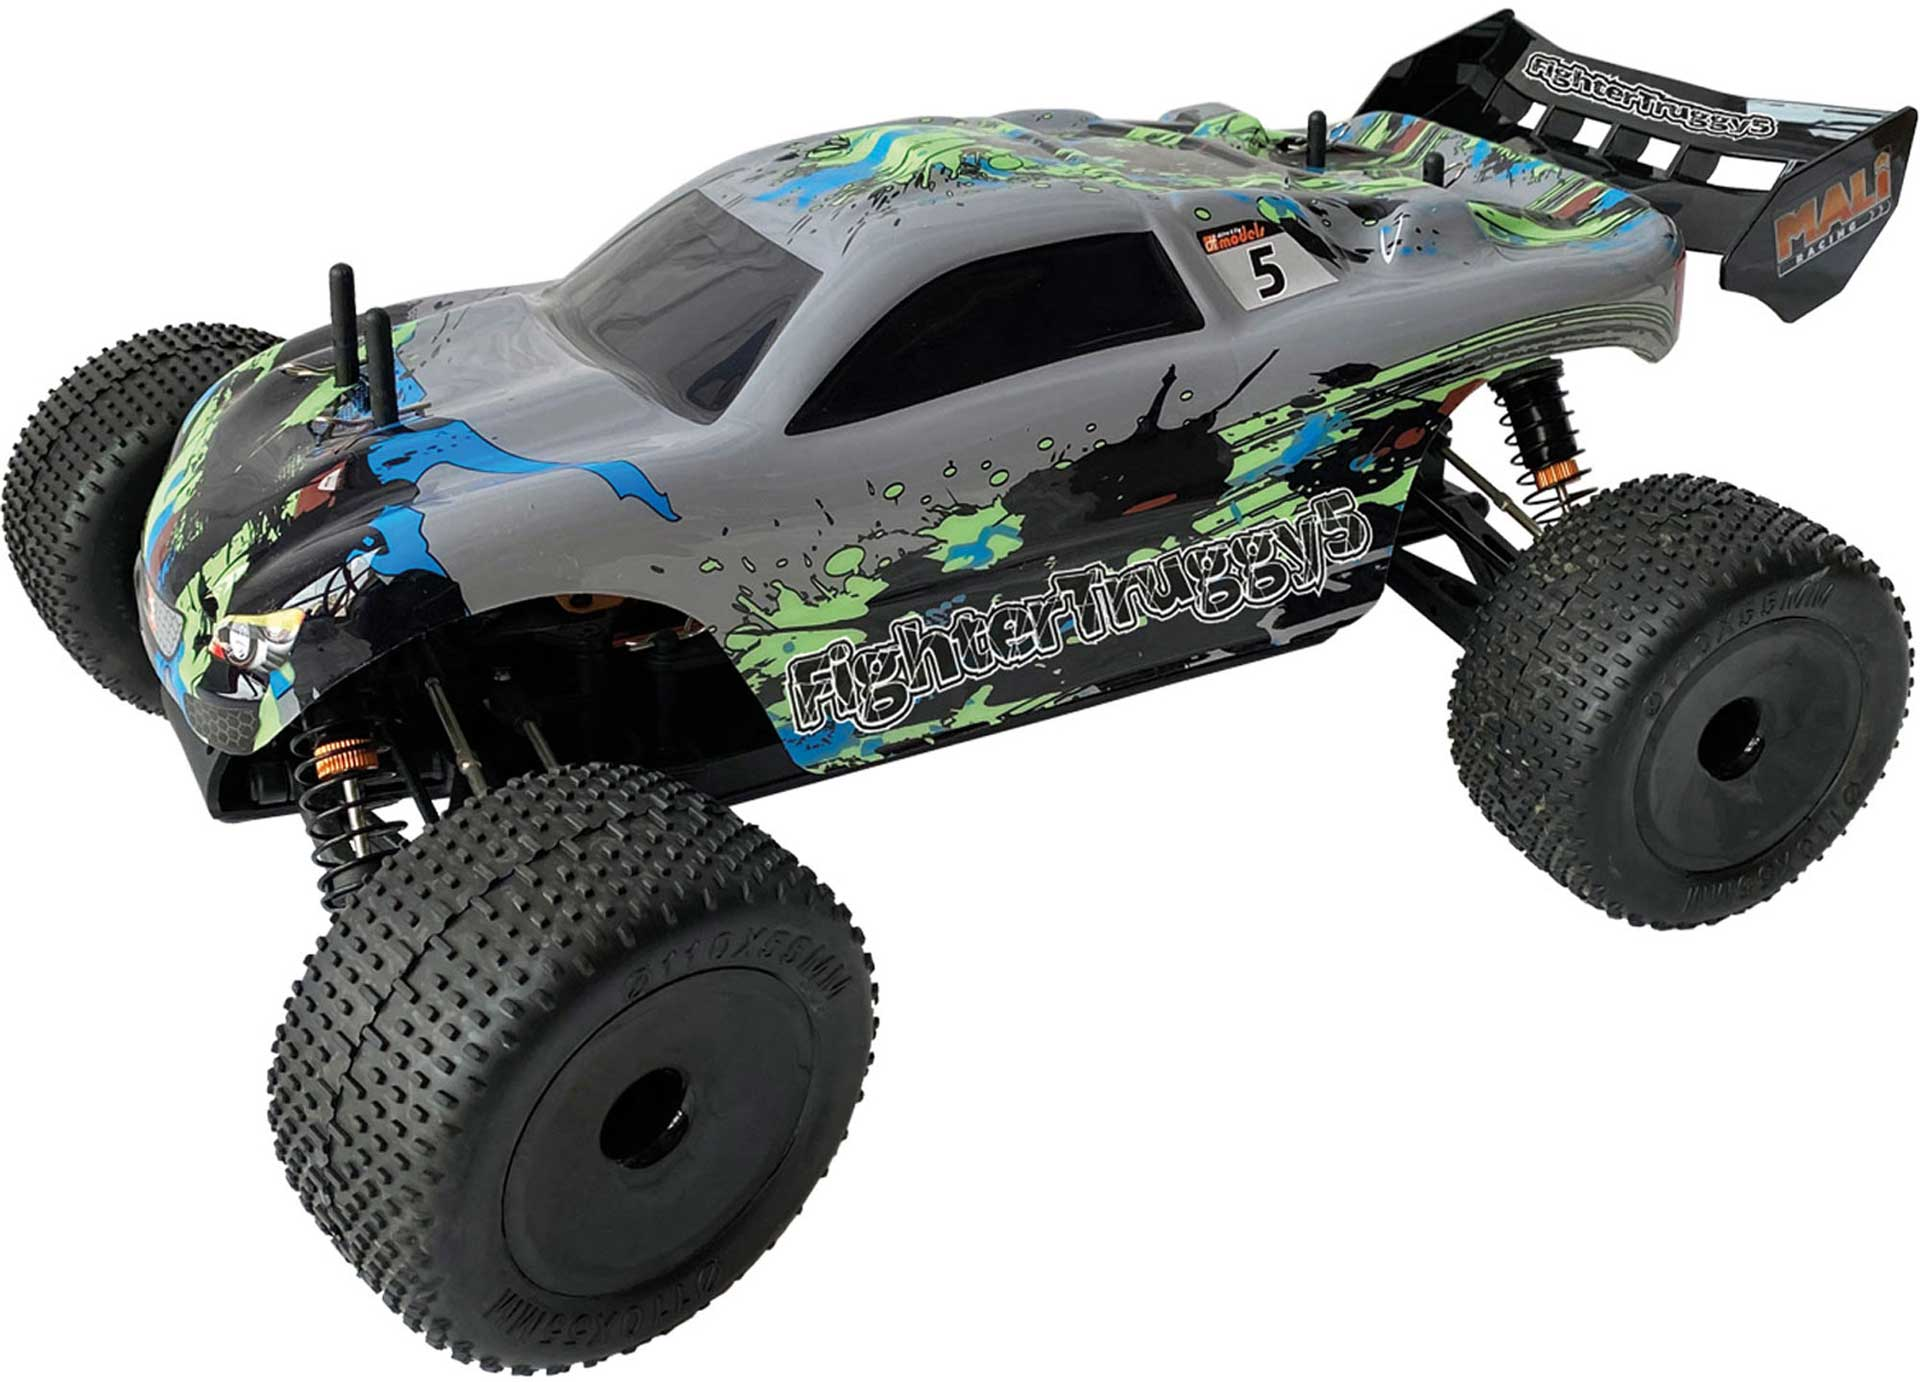 DRIVE & FLY MODELS FIGHTER TRUGGY 5 BRUSHLESS RTR 1/10 4WD